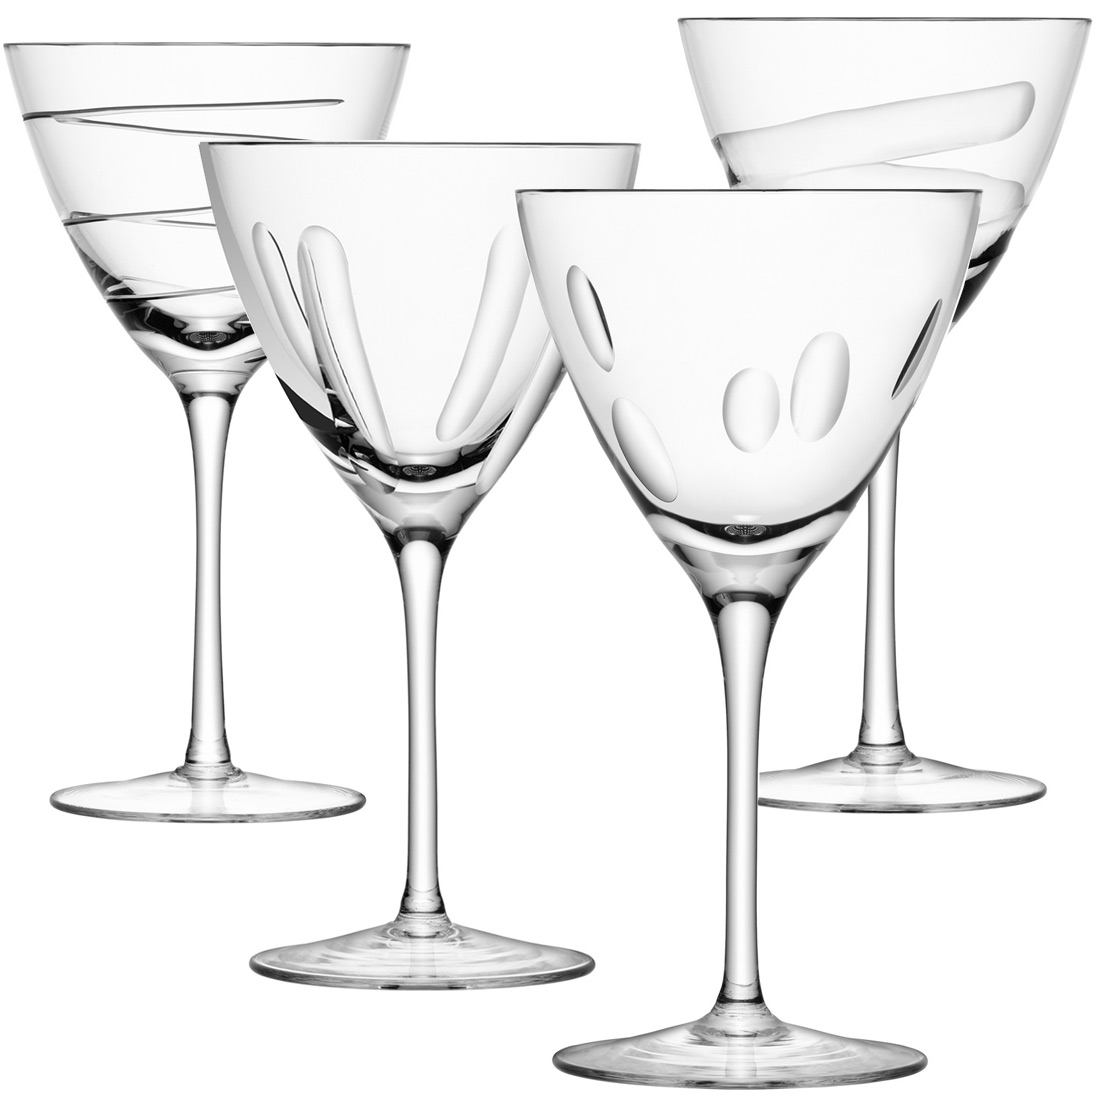 Lsa charleston set of 4 wine glasses jarrold norwich Unusual drinking glasses uk